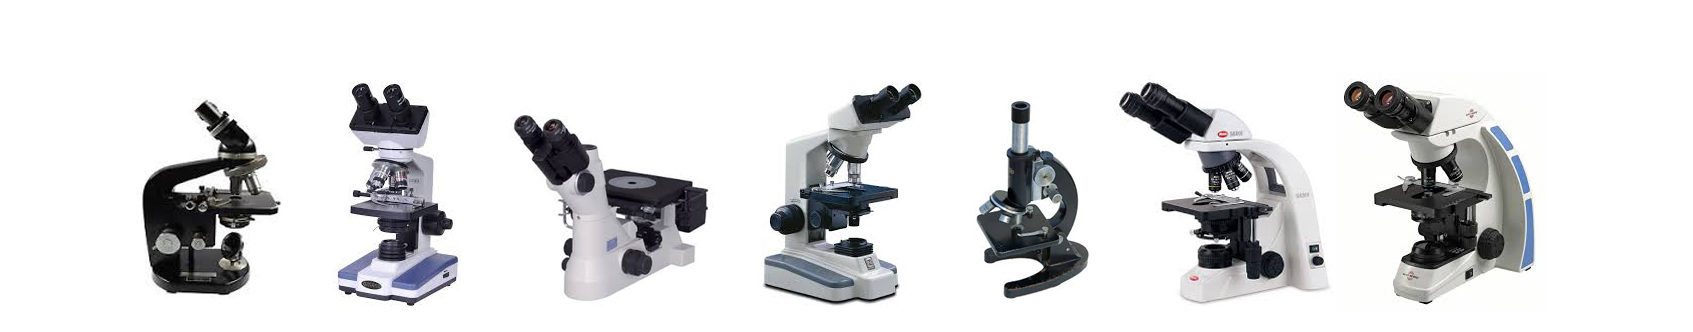 Microscope-cleaning-and-repair